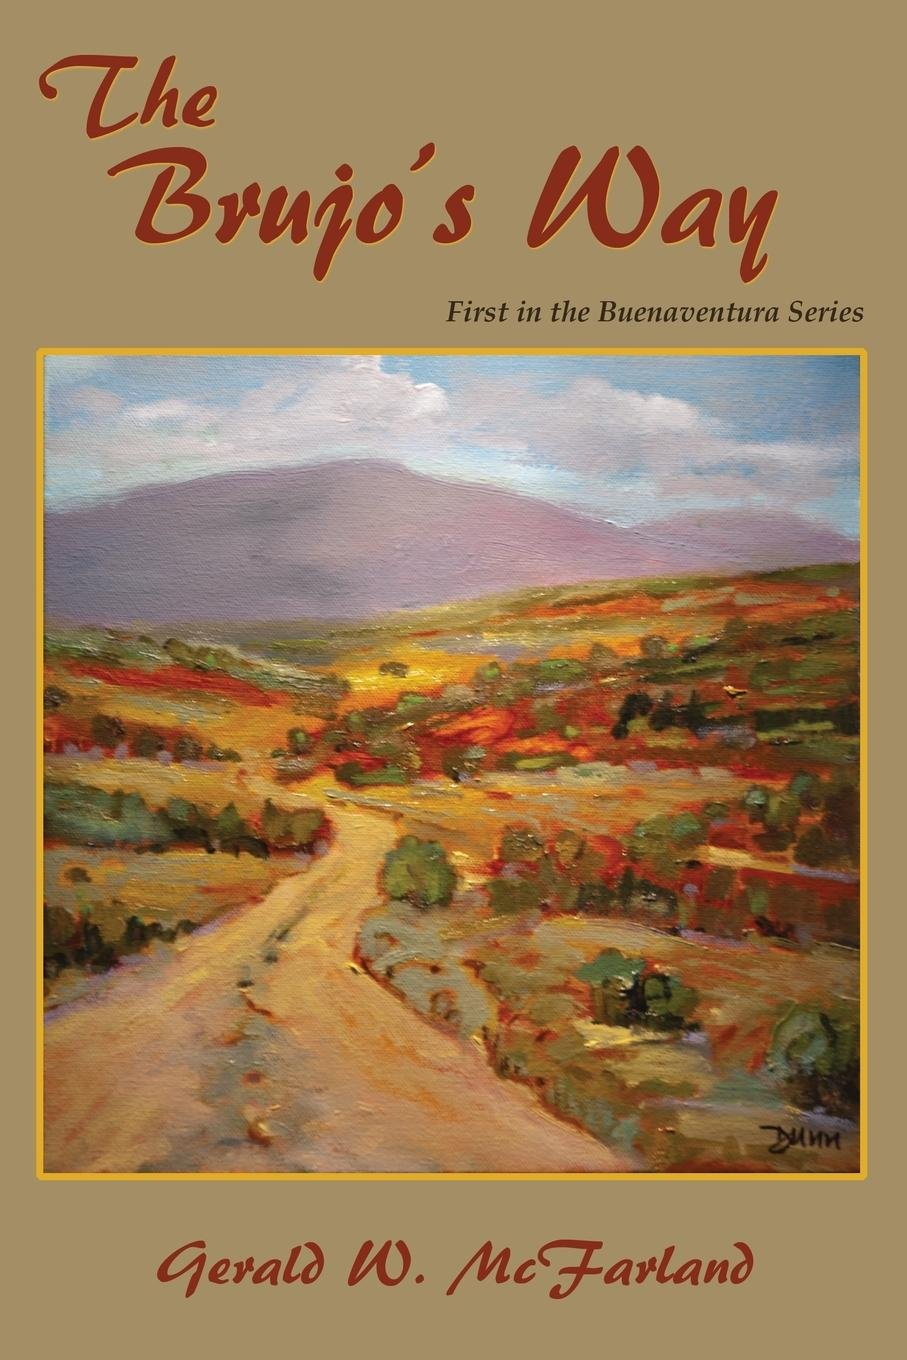 The Brujo's Way, First in the Buenaventura Series ebook